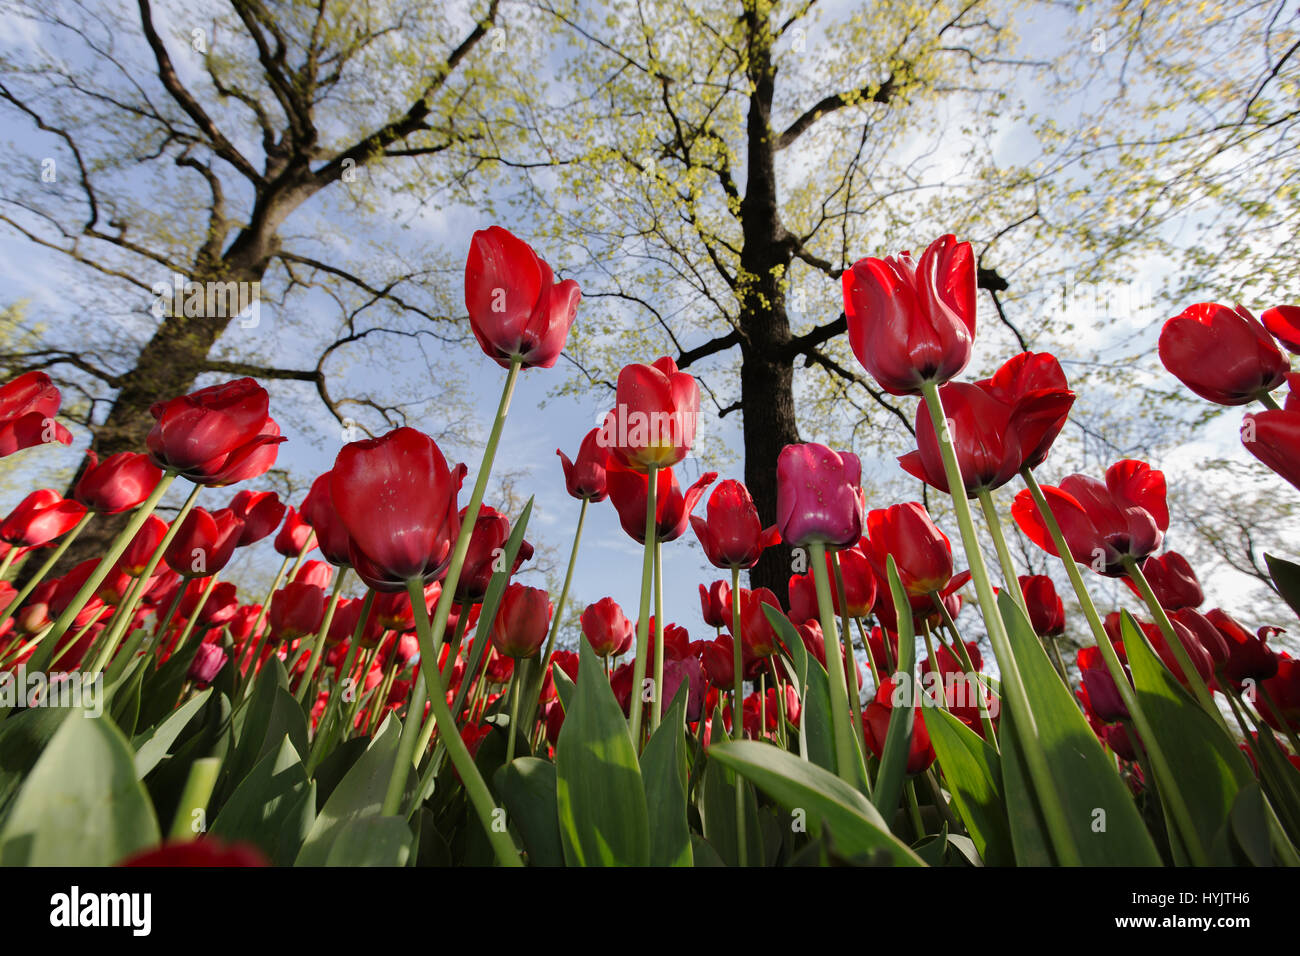 Pralormo castle,flourishing tulips in April for the event 'Messer Tulipano',Piedmont,Italy,Europe - Stock Image